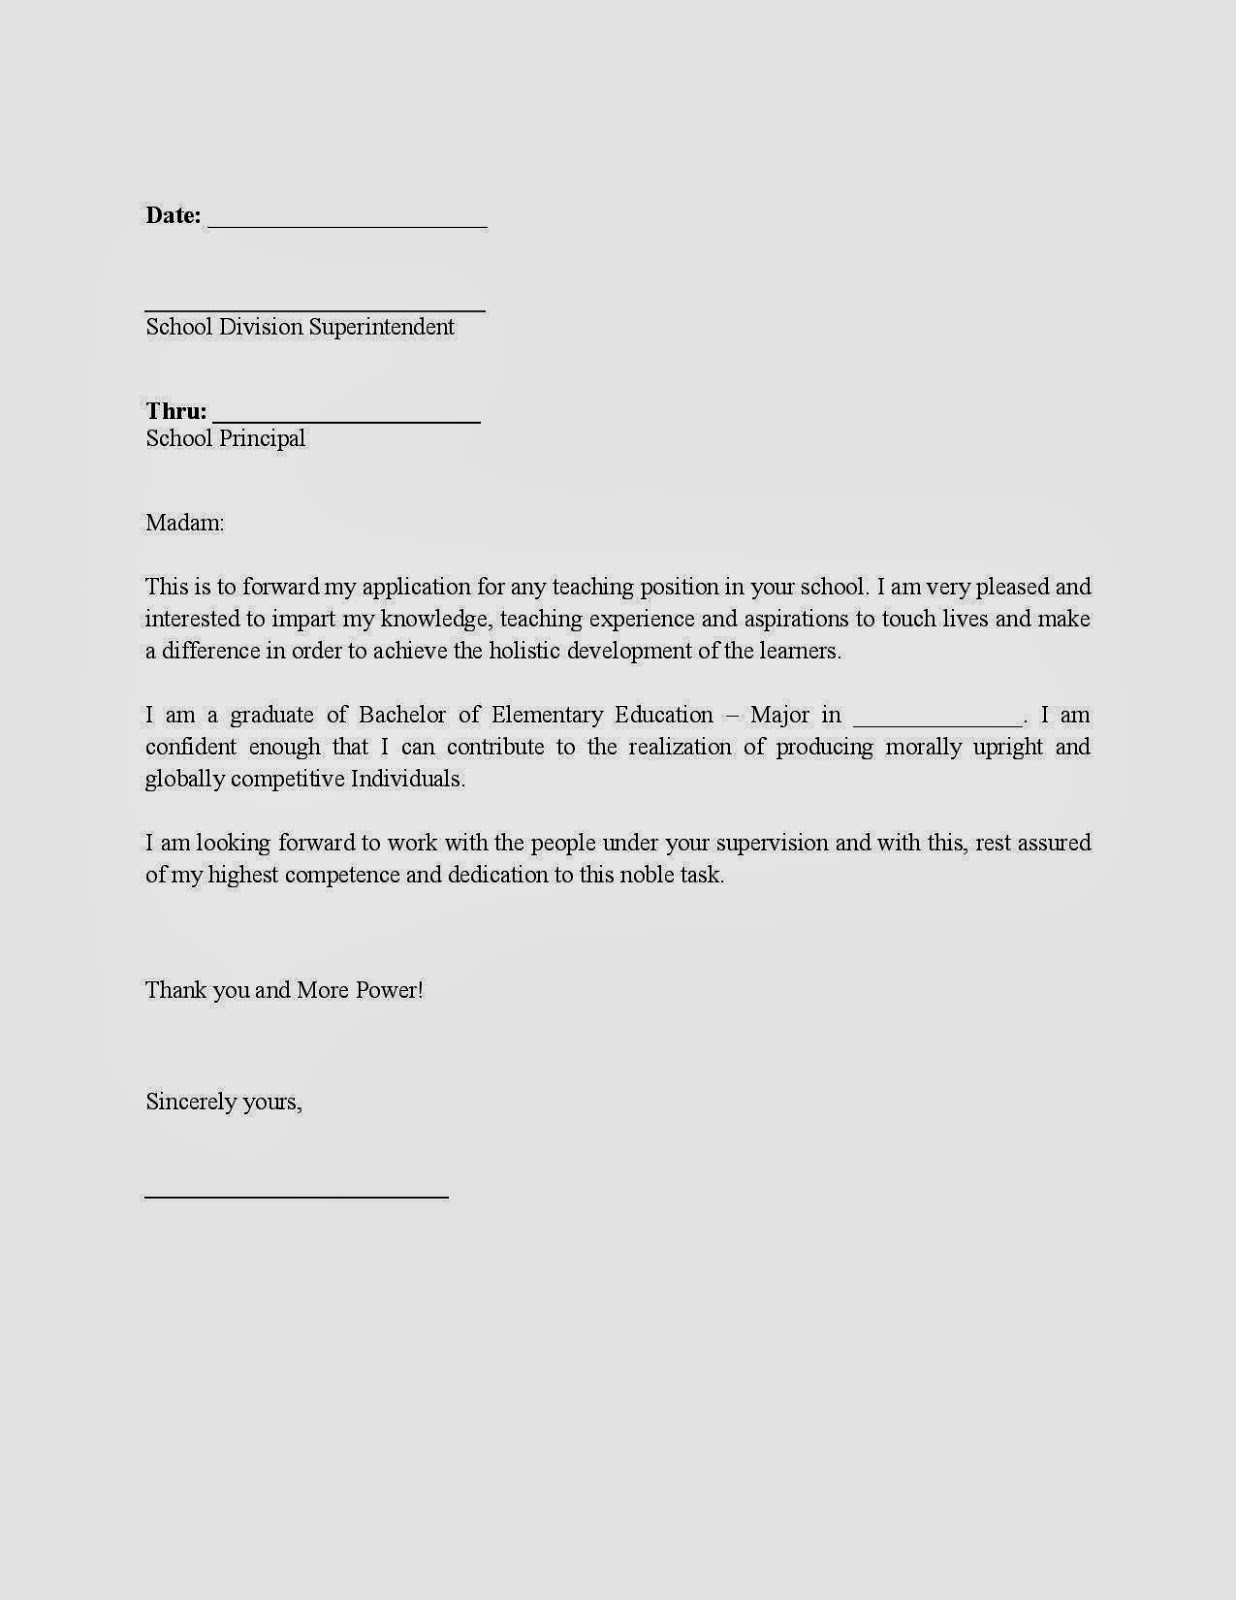 Job application for accounts teacher whats new awesome sample thank you essays teachers teacher appreciation poem funny short poems about teachers gracie teacher appreciation poem spiritdancerdesigns Choice Image